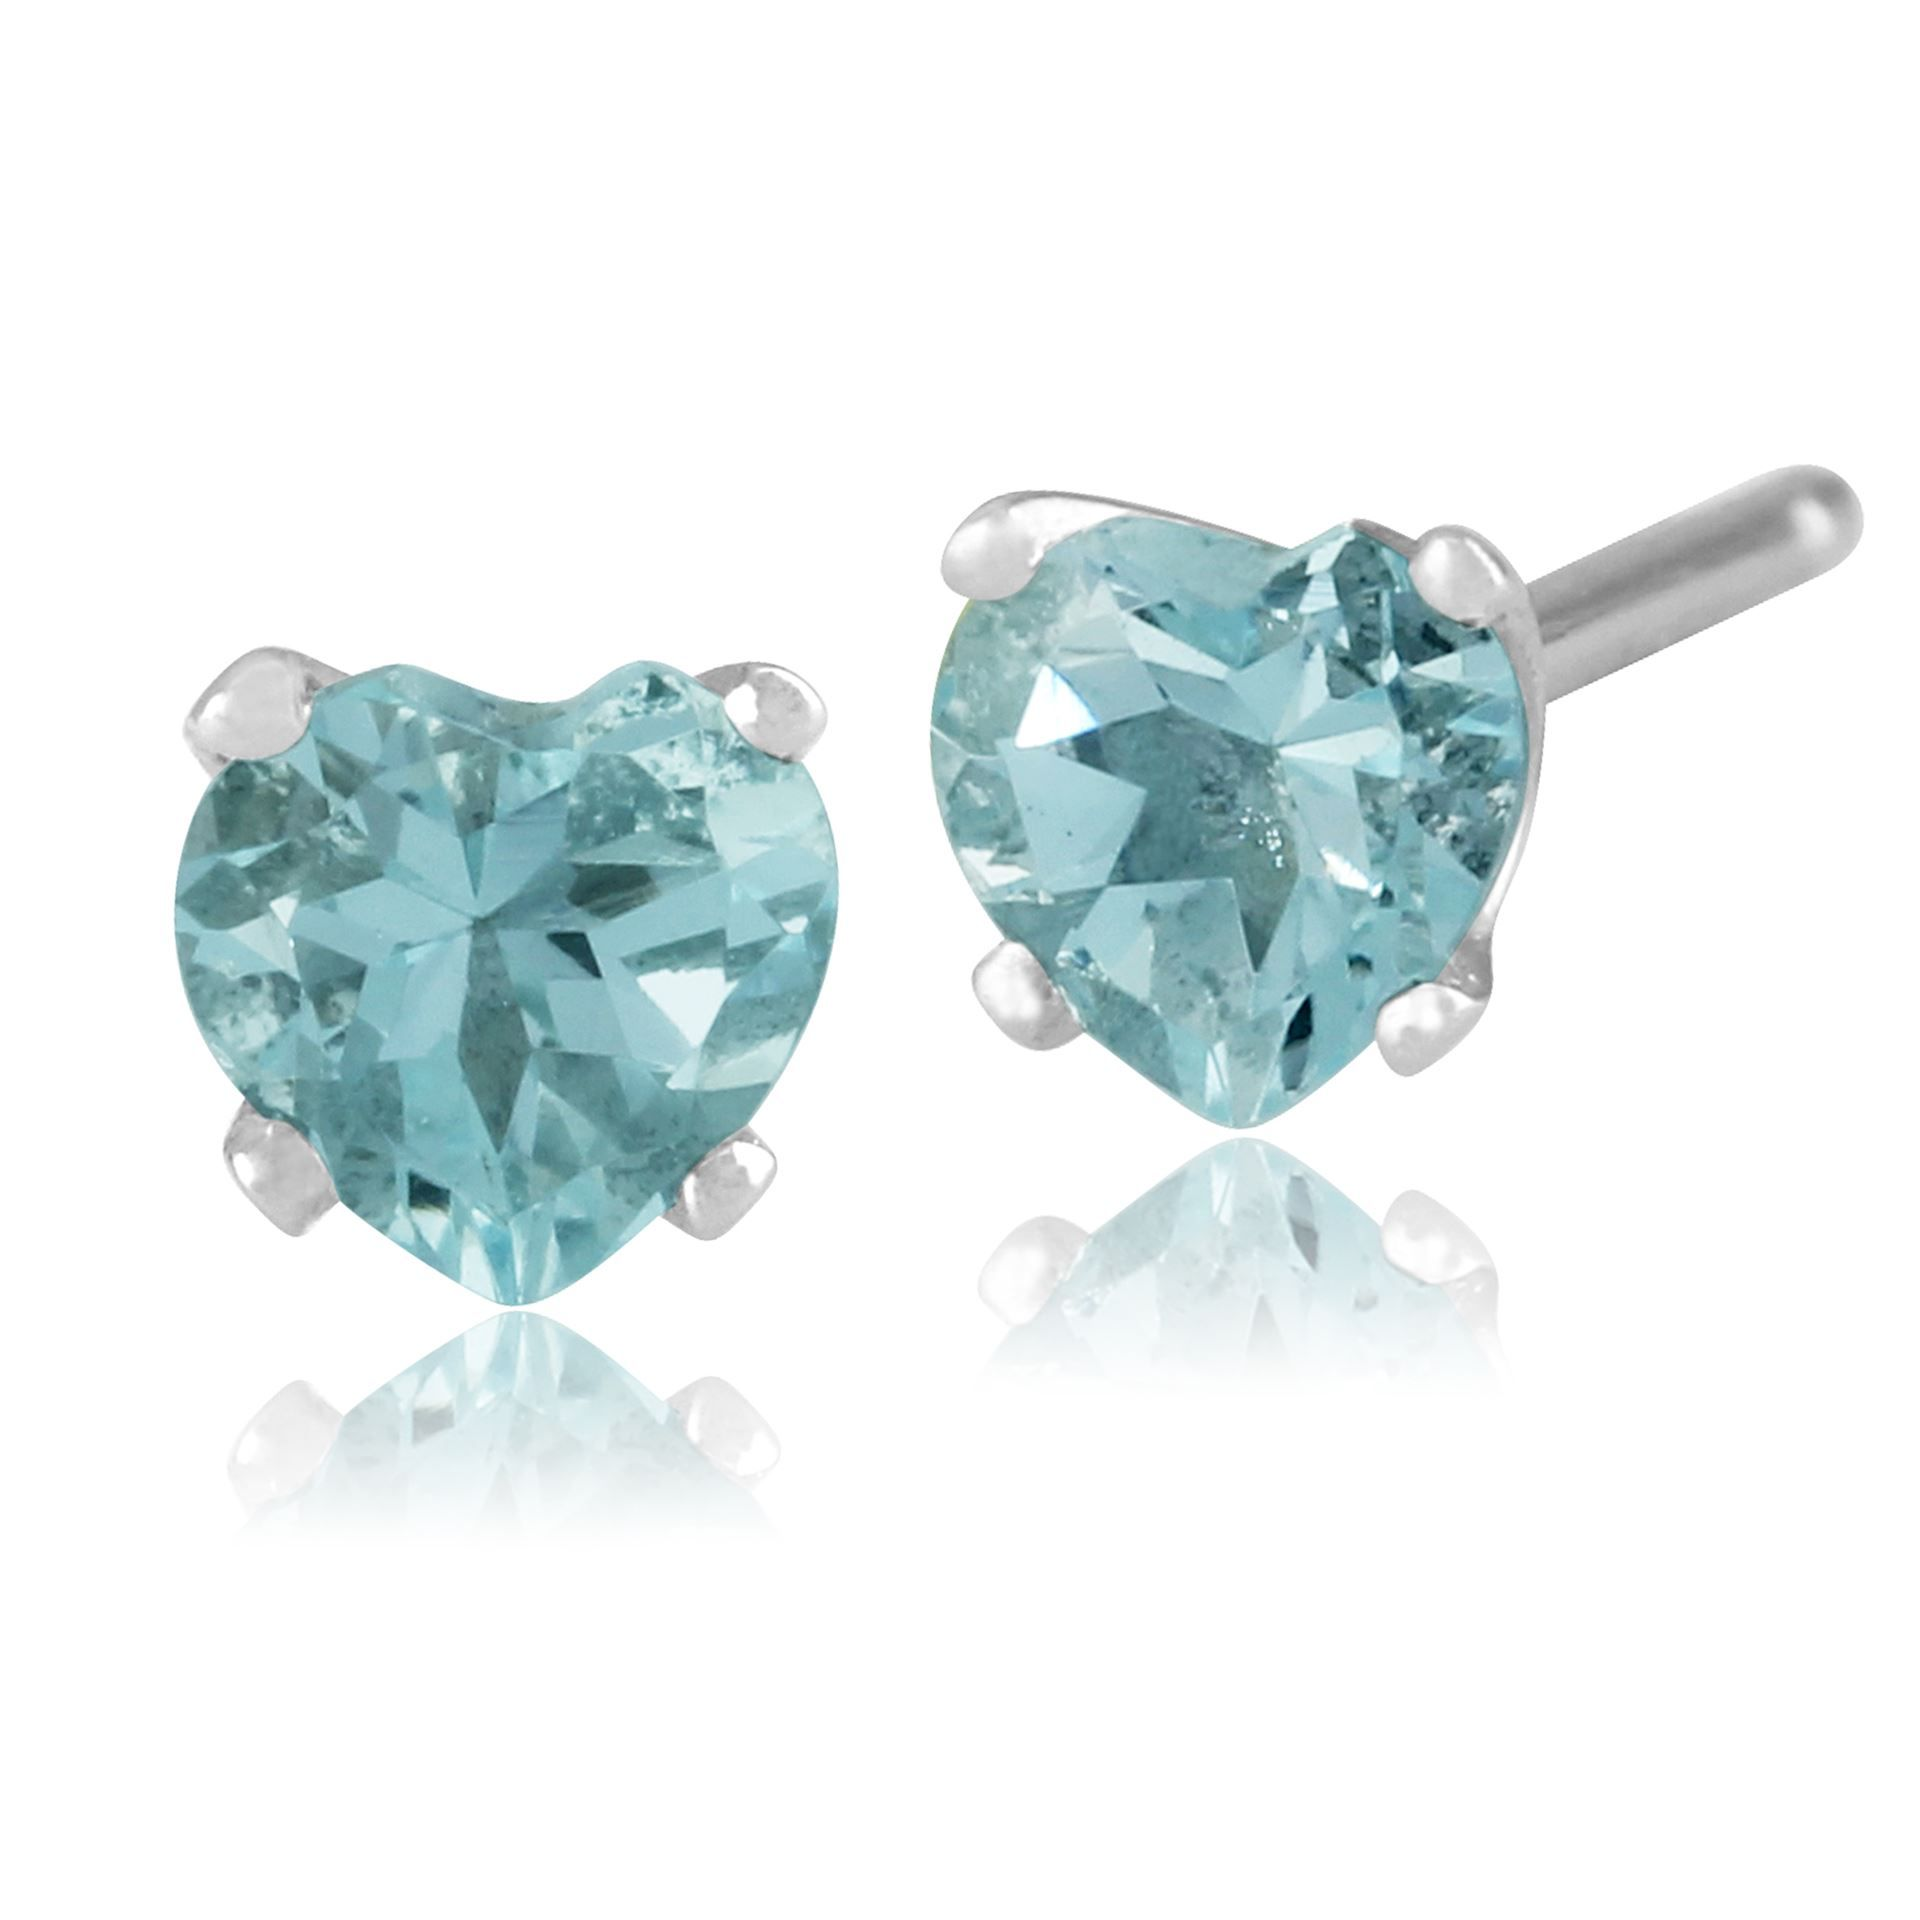 earrings from mr white gold jewellery stud aqua image aquamarine marine gemstone